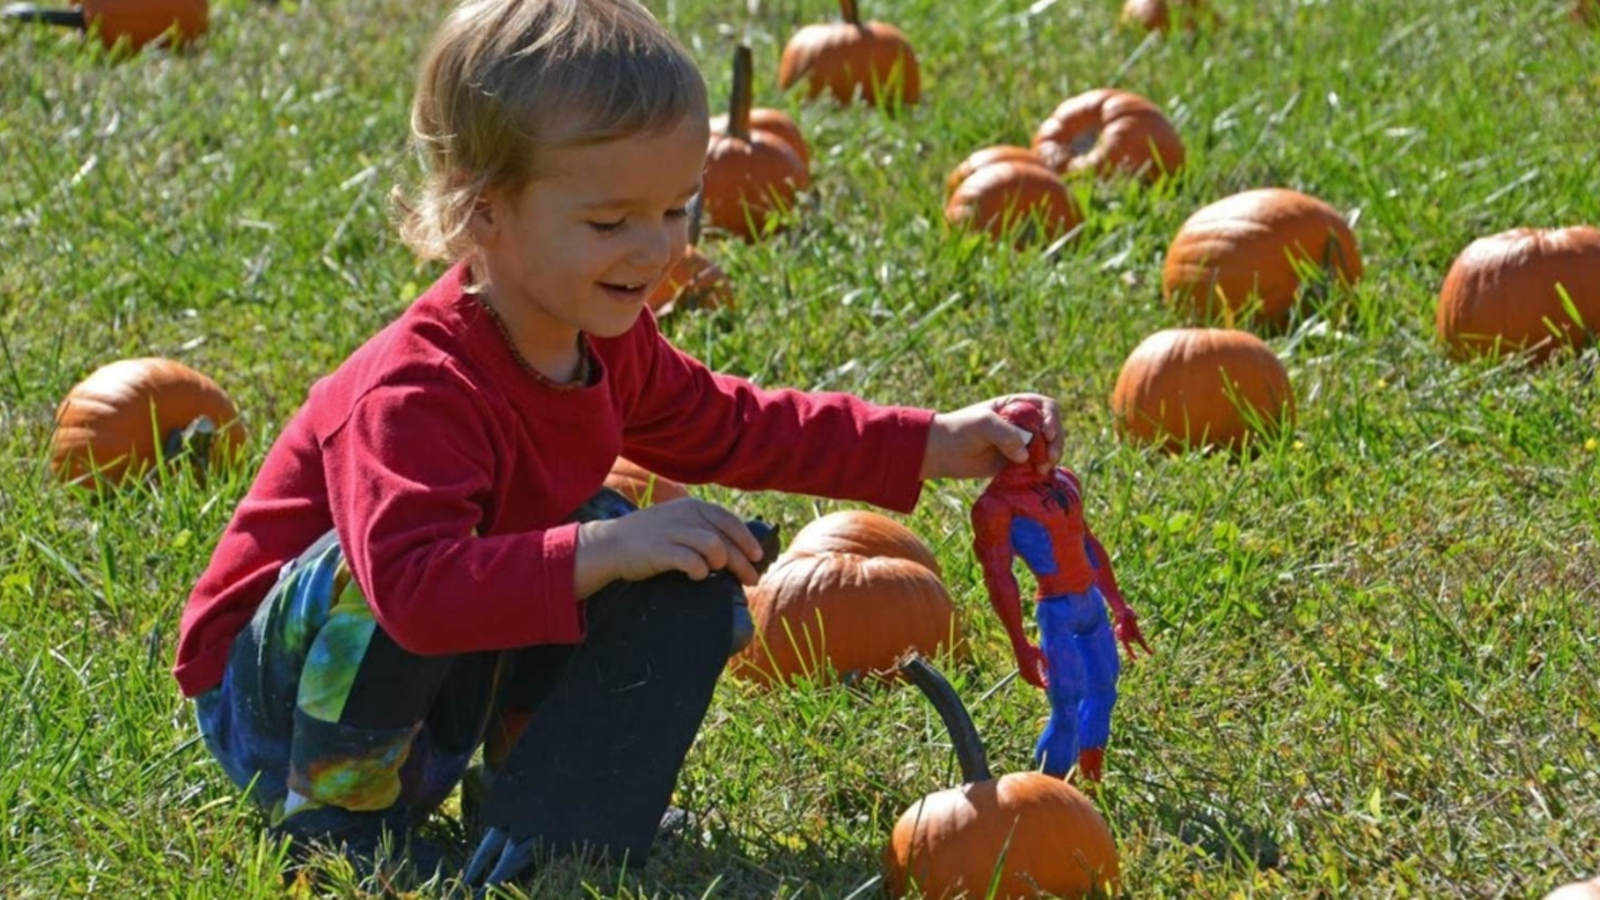 fall activities today near me